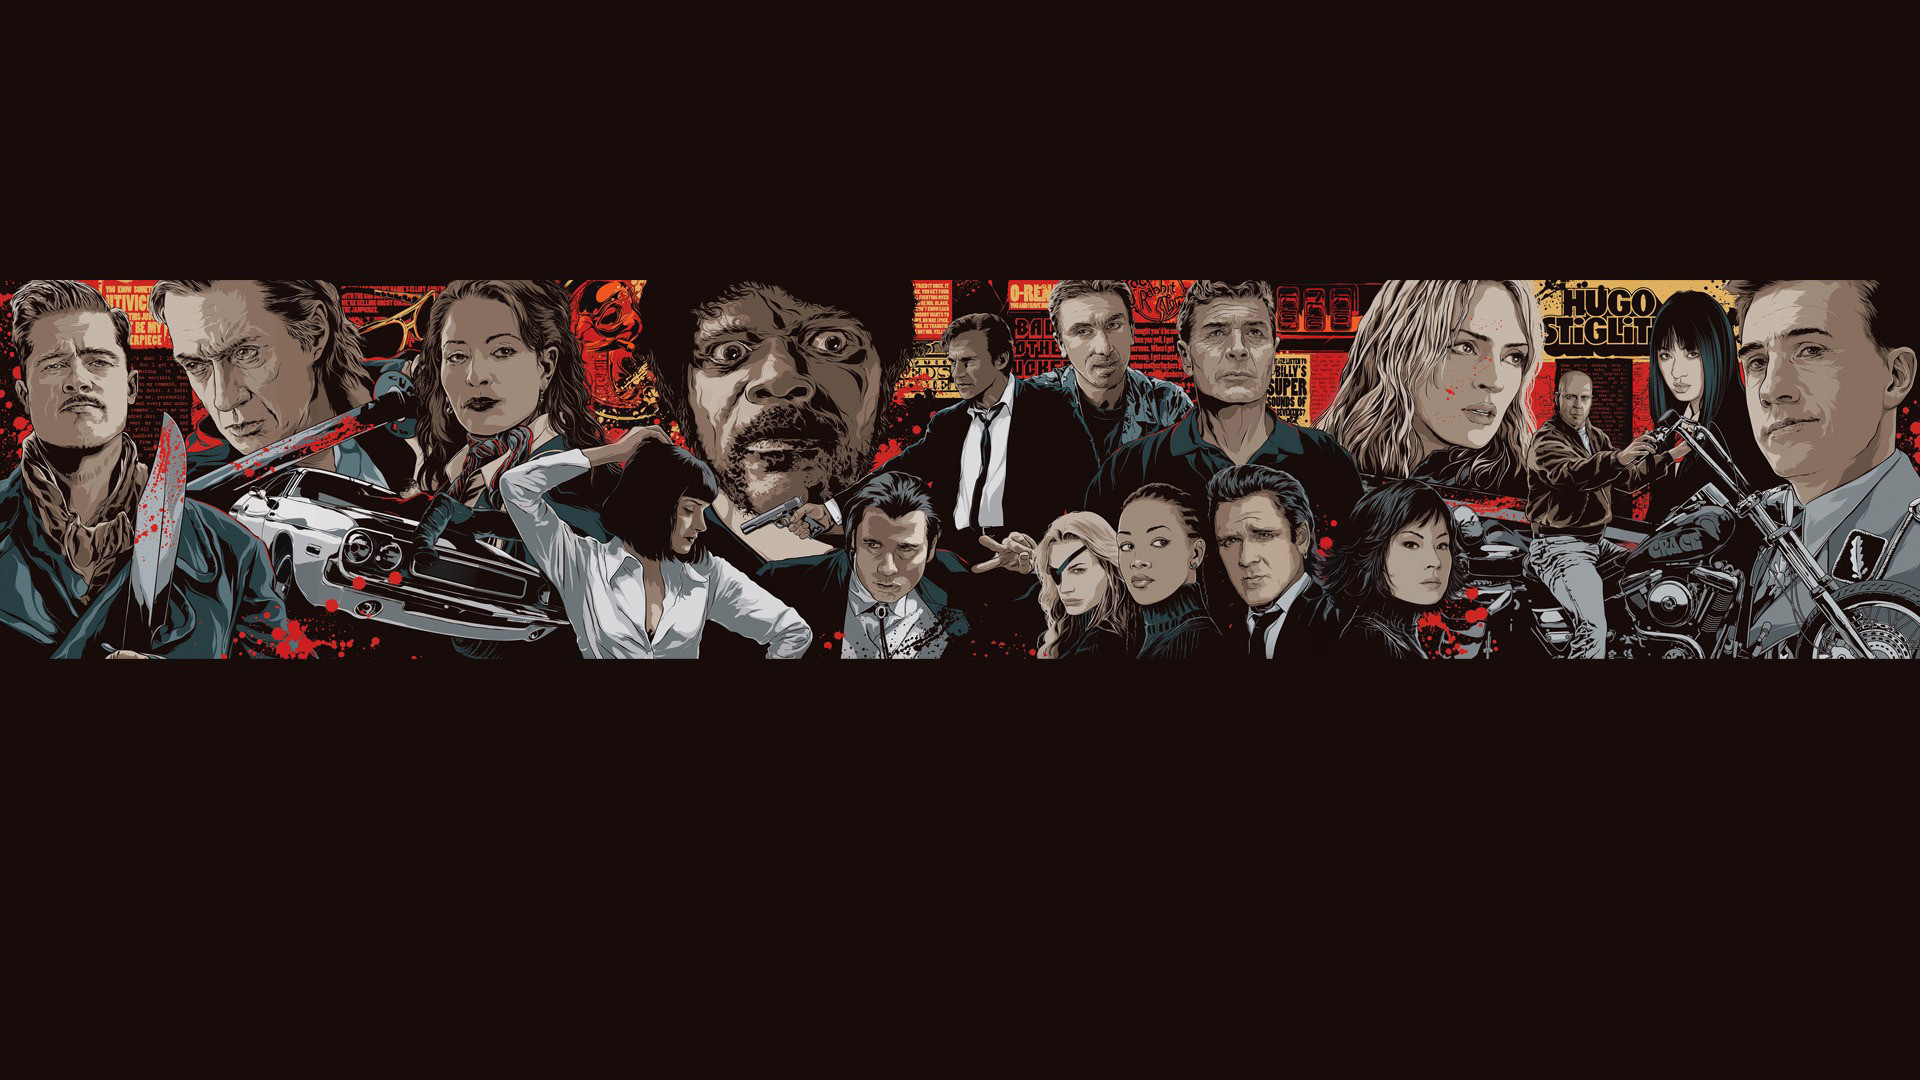 1920x1080 Pulp Fiction Movie Image source from this